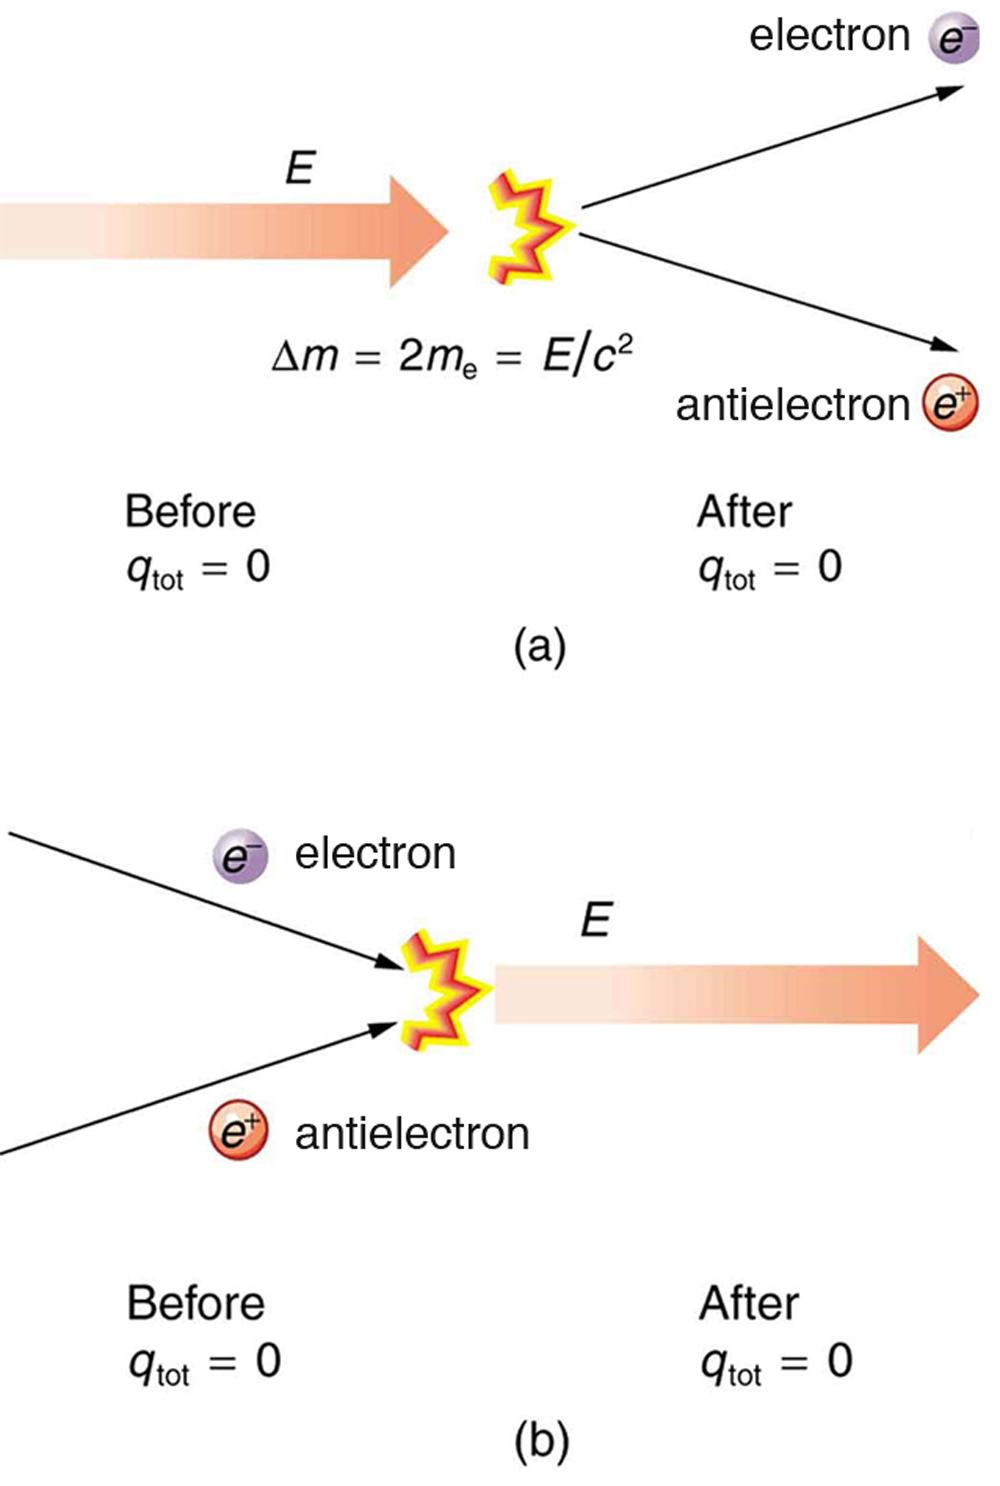 Here energy is shown by a vector. Initially electrostatic charge q tot is equal to zero. Now energy gets converted into matter and creates one electron and antielectron pair but final electrostatic charge is equal to zero so change in mass delta m is equal to two m e, which is equal to E divided by c square. (b) In this figure, Electron and antielectron are colliding with each other. The electrostatic charge q tot before collision is zero and after collision it will remain zero.